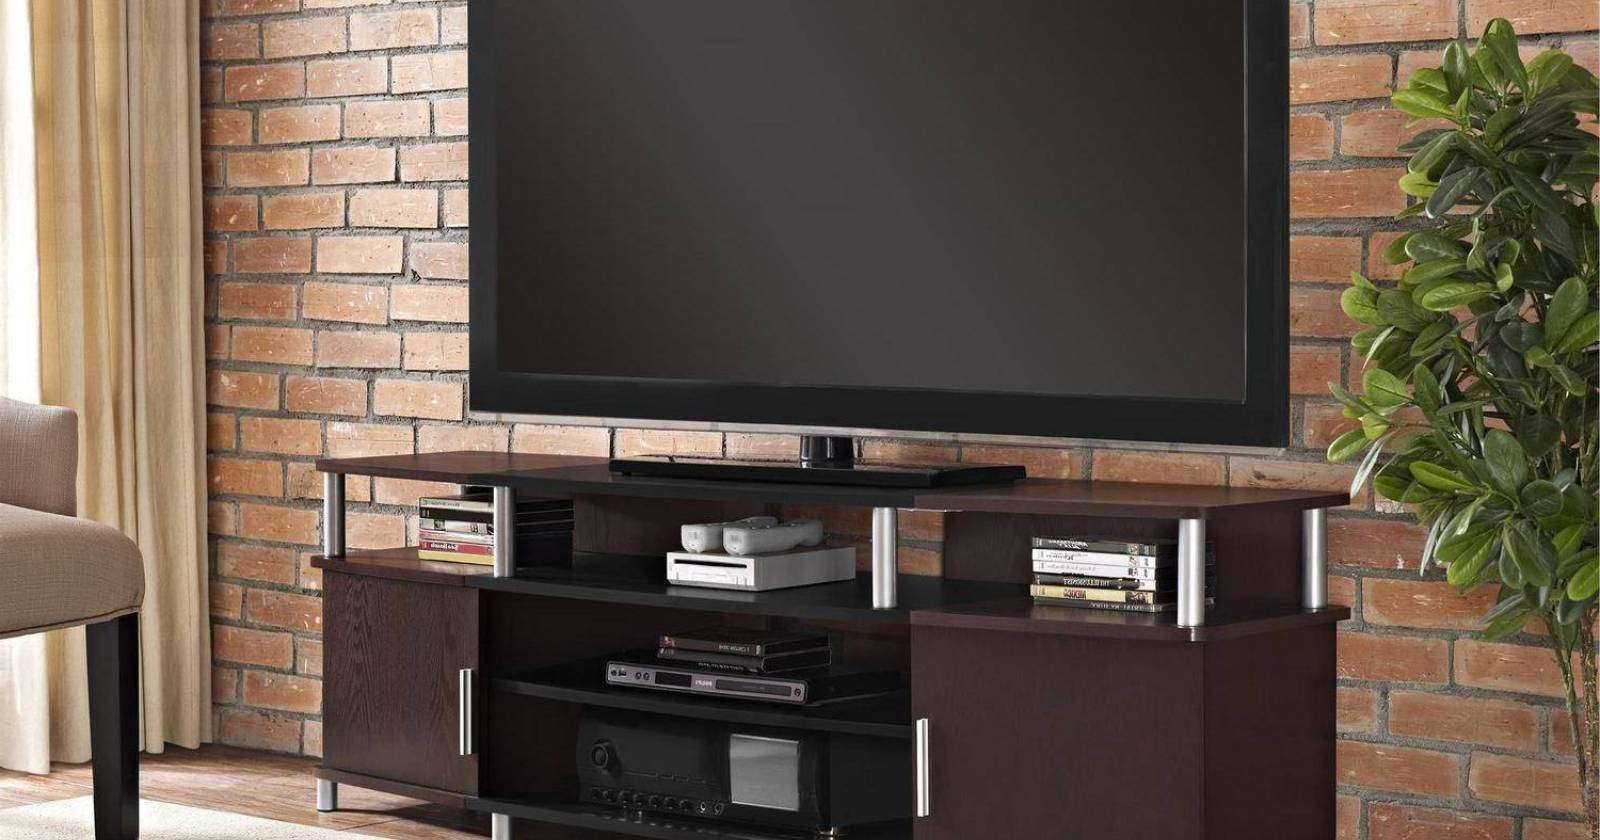 Tv : Tv Stands For 70 Inch Tvs Sweet Tv Stand For 70 Inch Tv Ikea Within Tv Stands For 70 Inch Tvs (View 9 of 15)